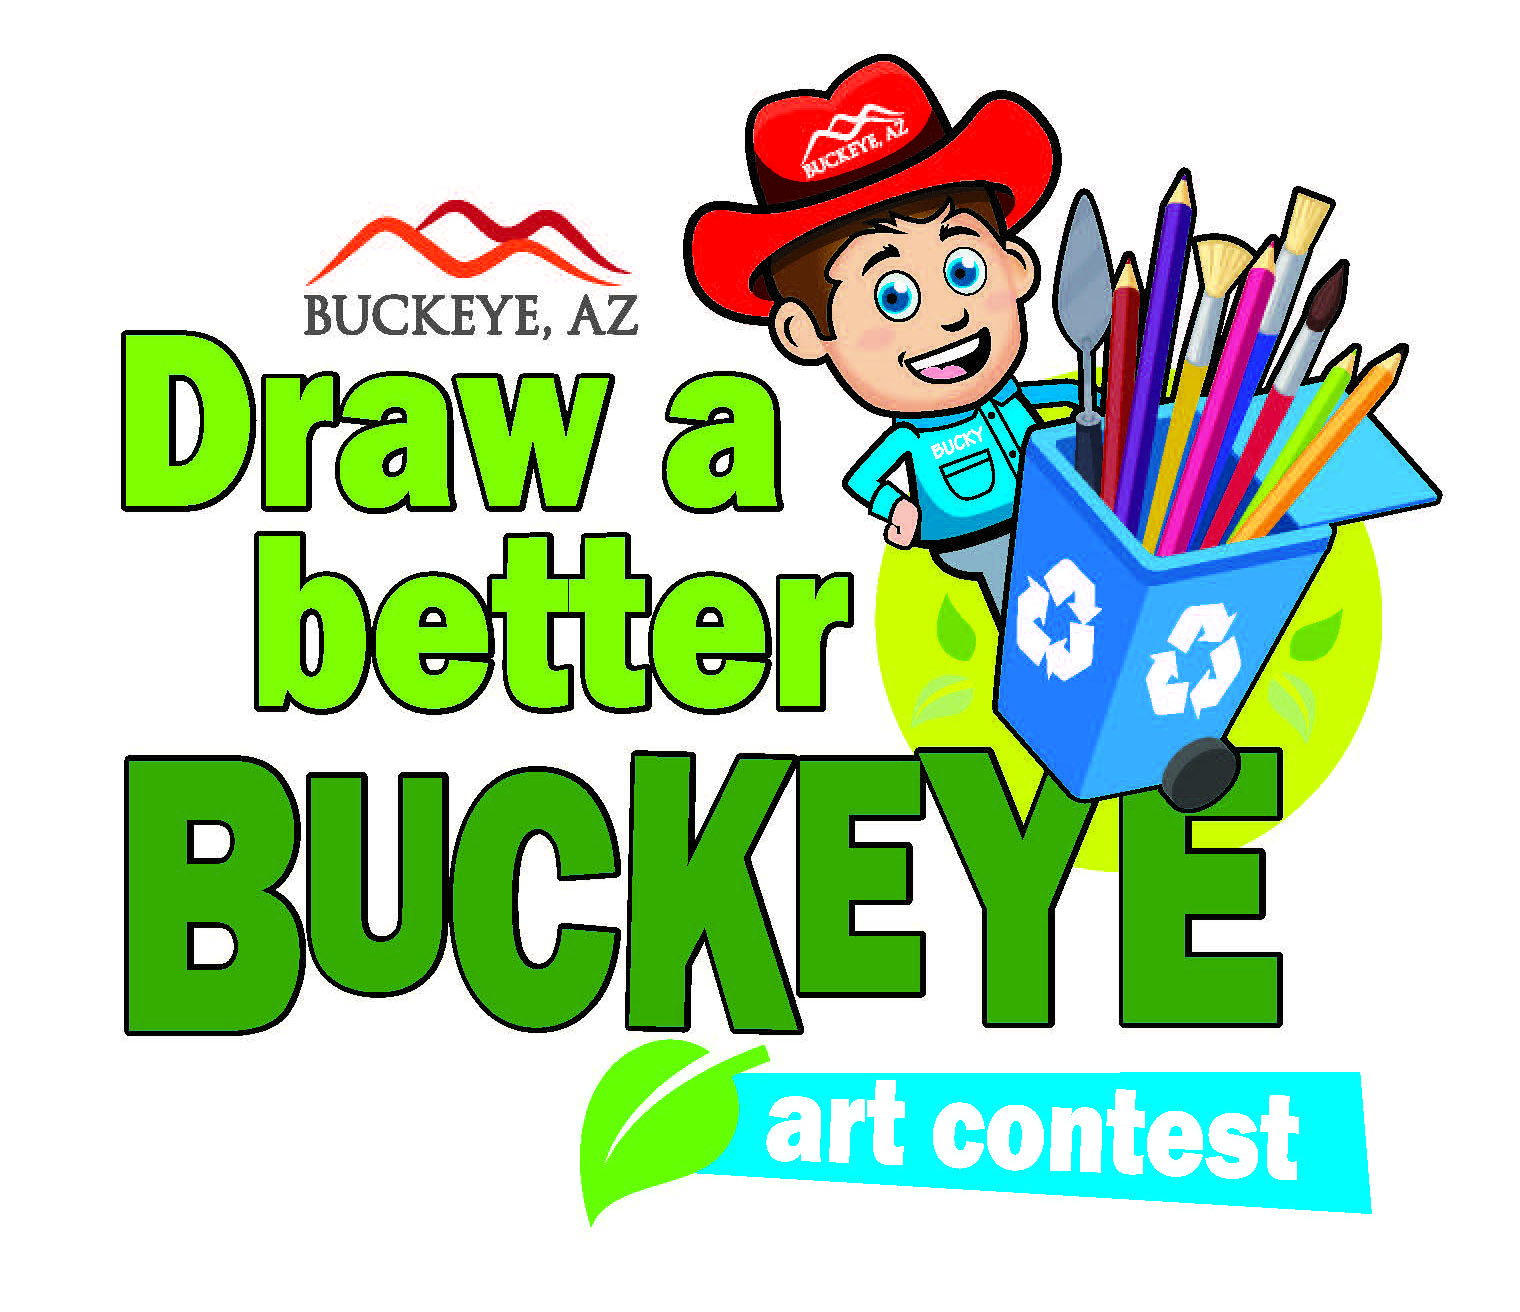 Draw Buckeye art contest logo